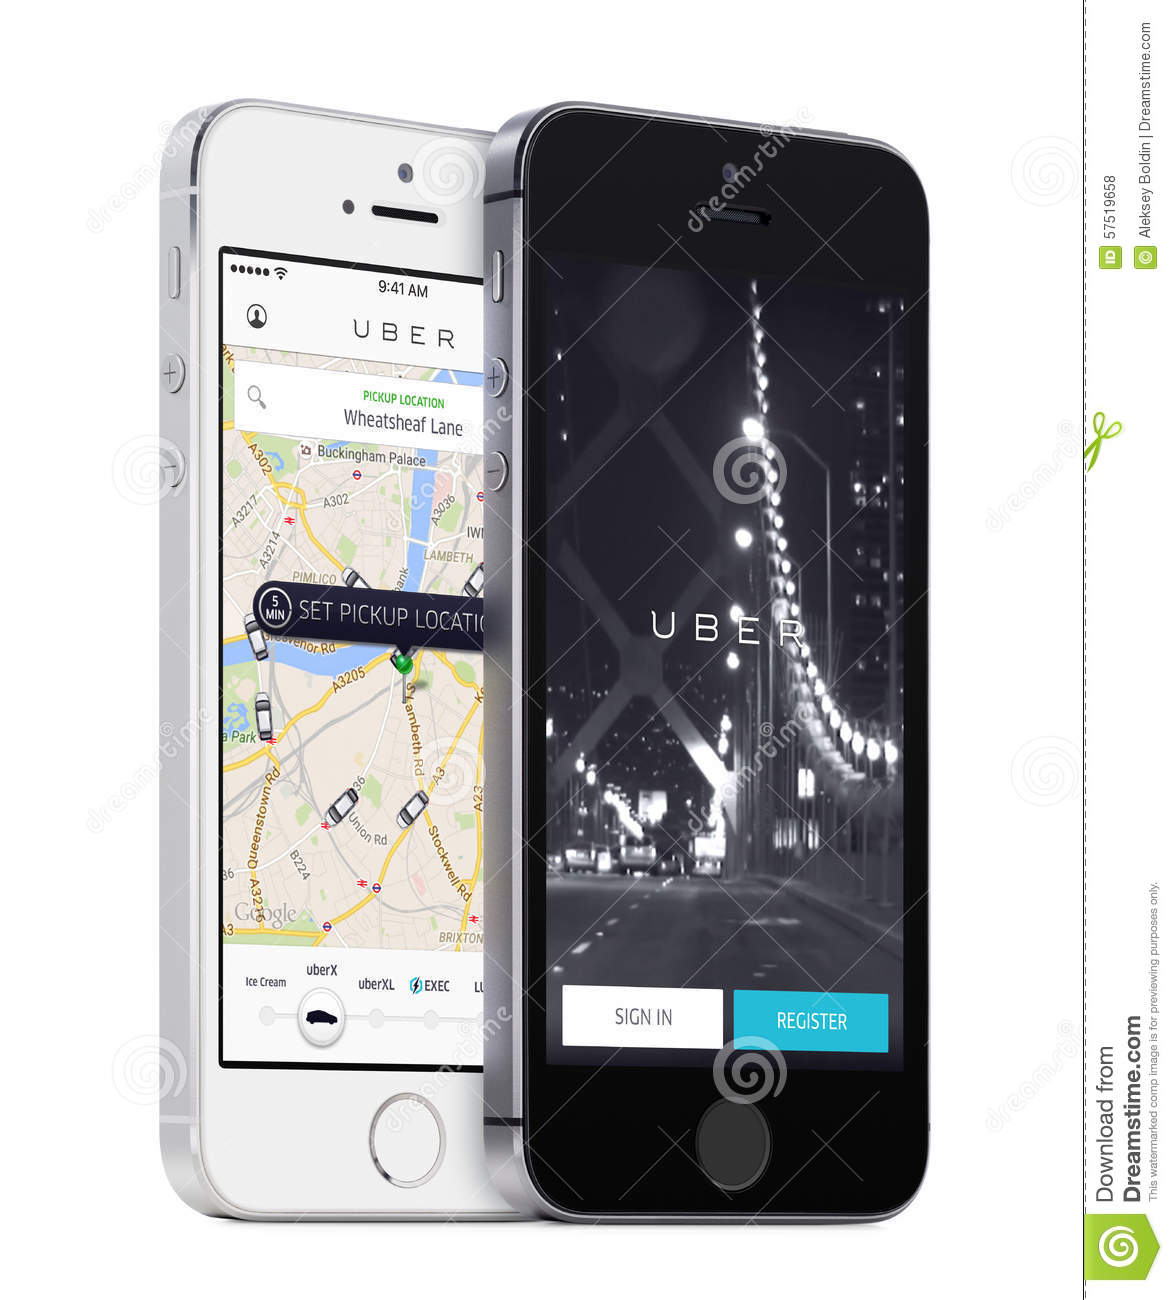 Uber App Startup Page And Uber Search Cars Map On White And Black